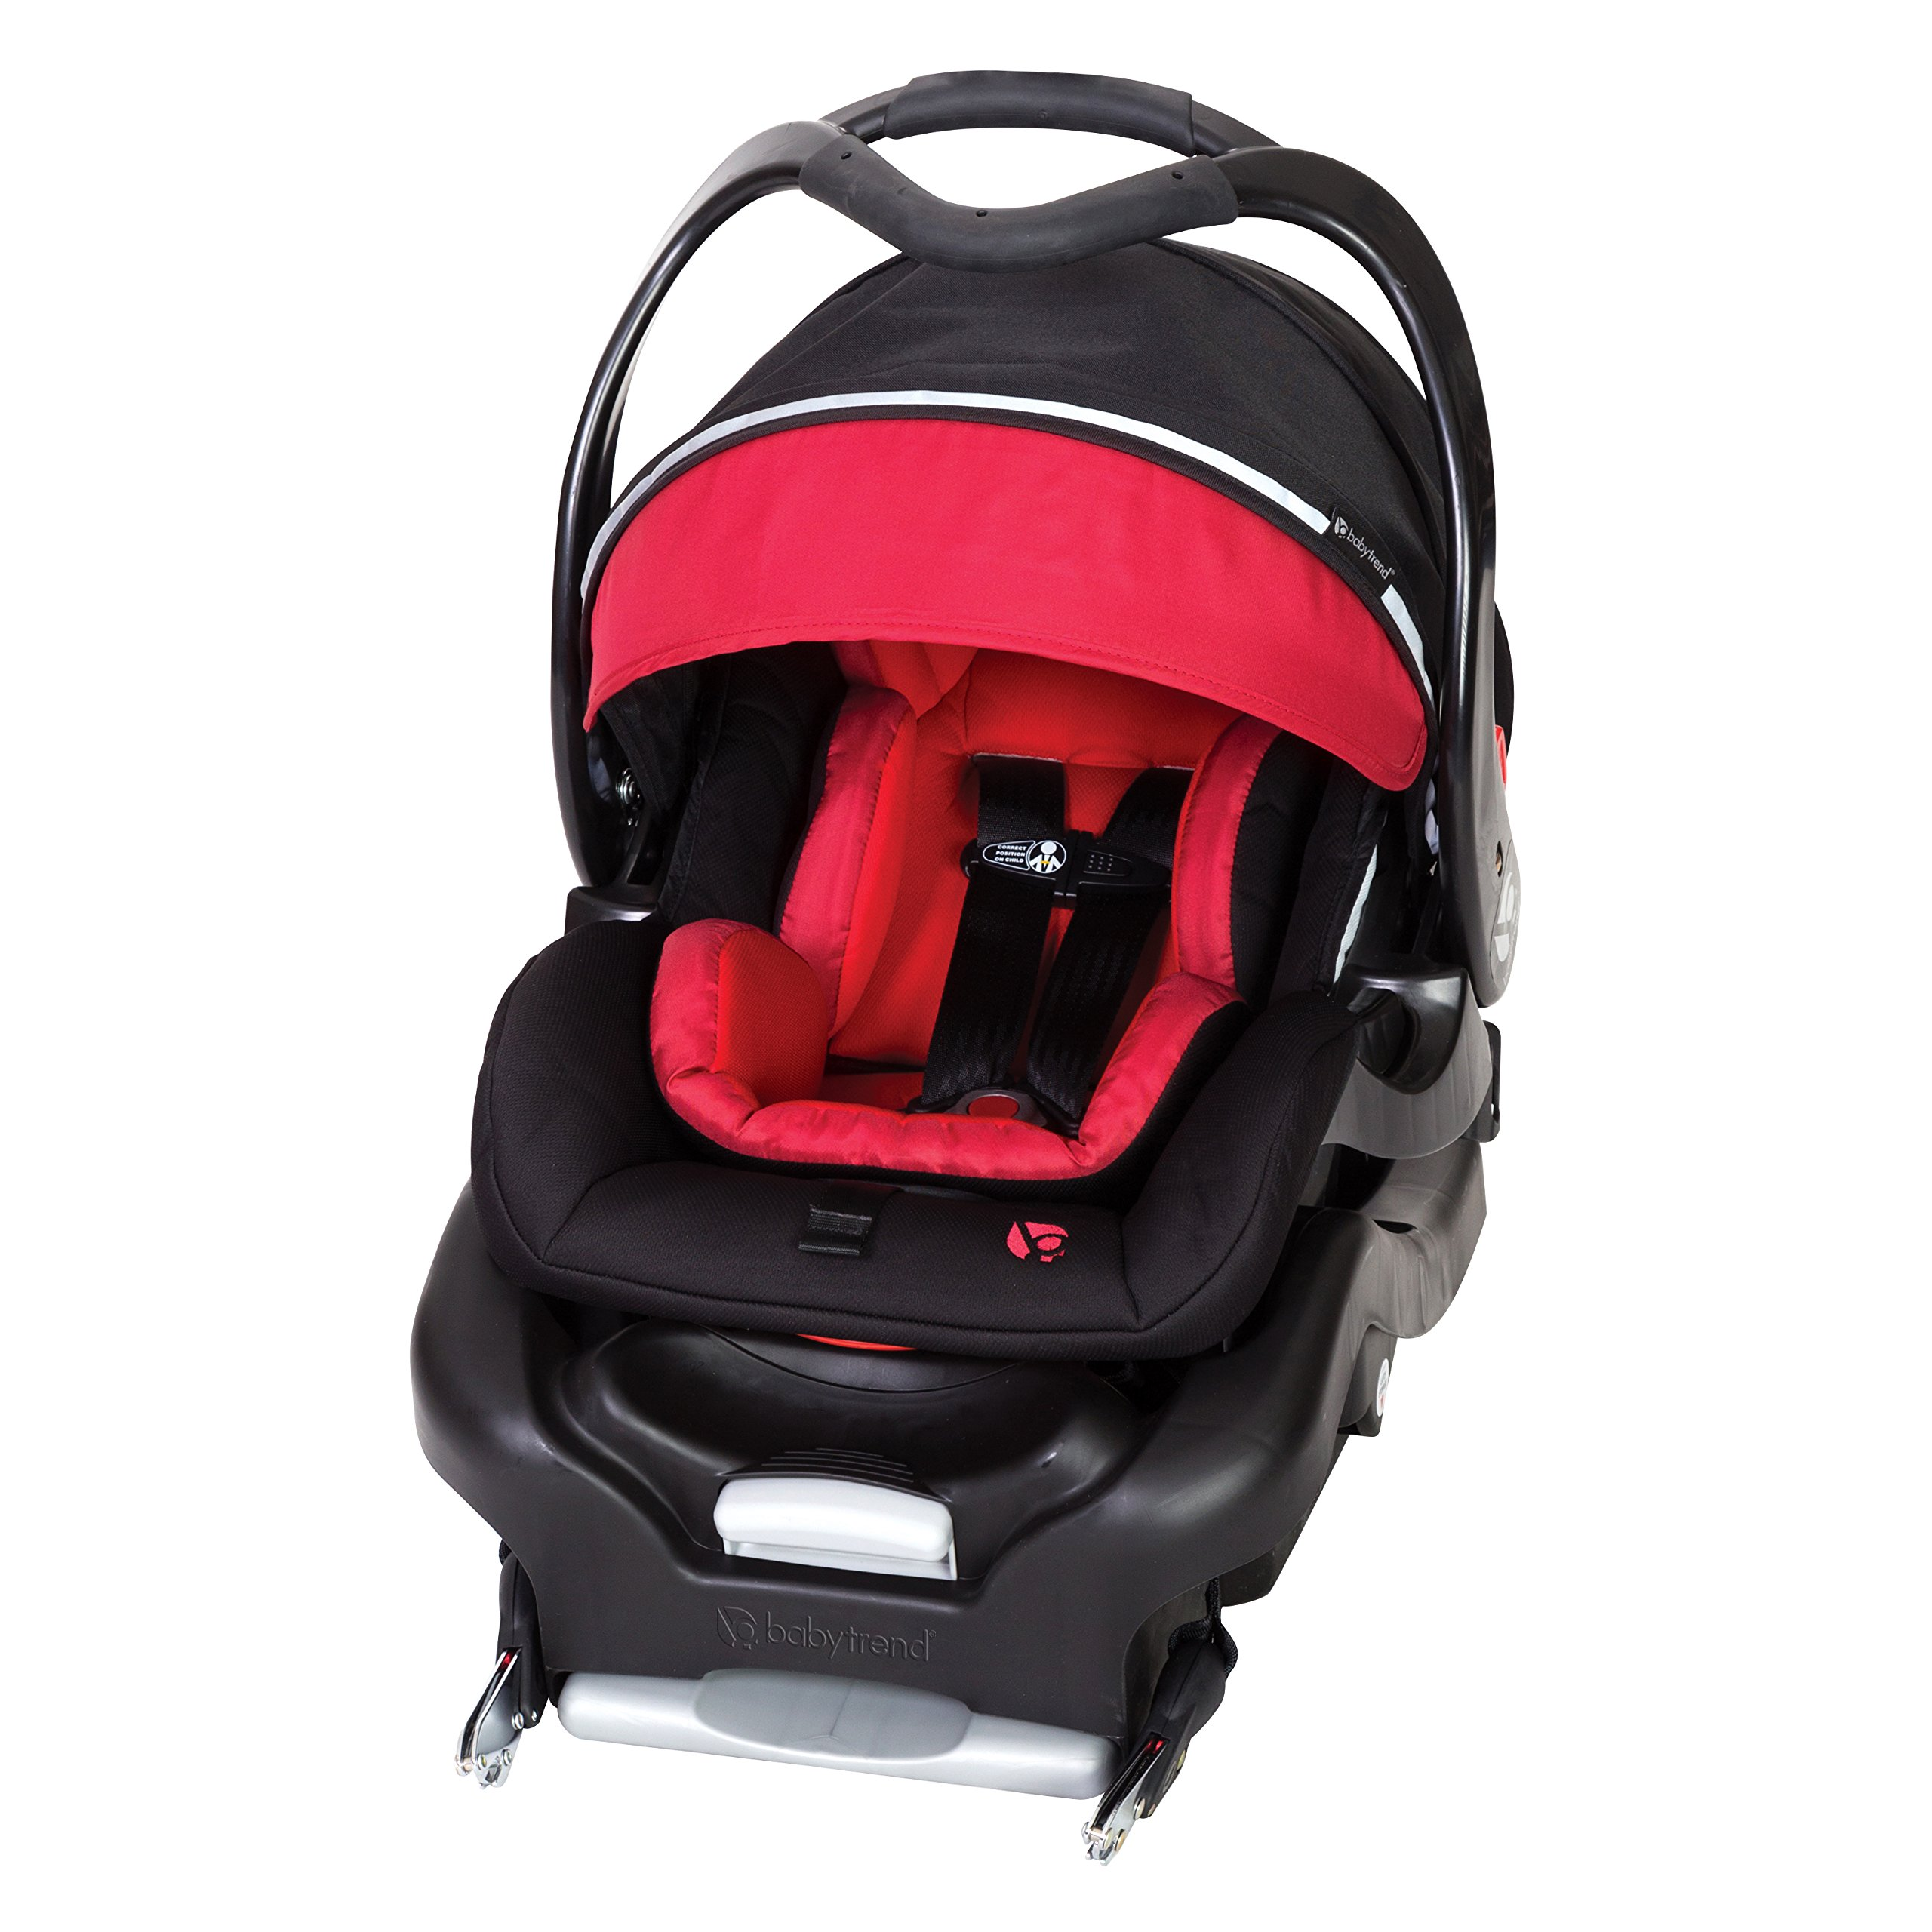 Baby Trend Grotto Car Seat